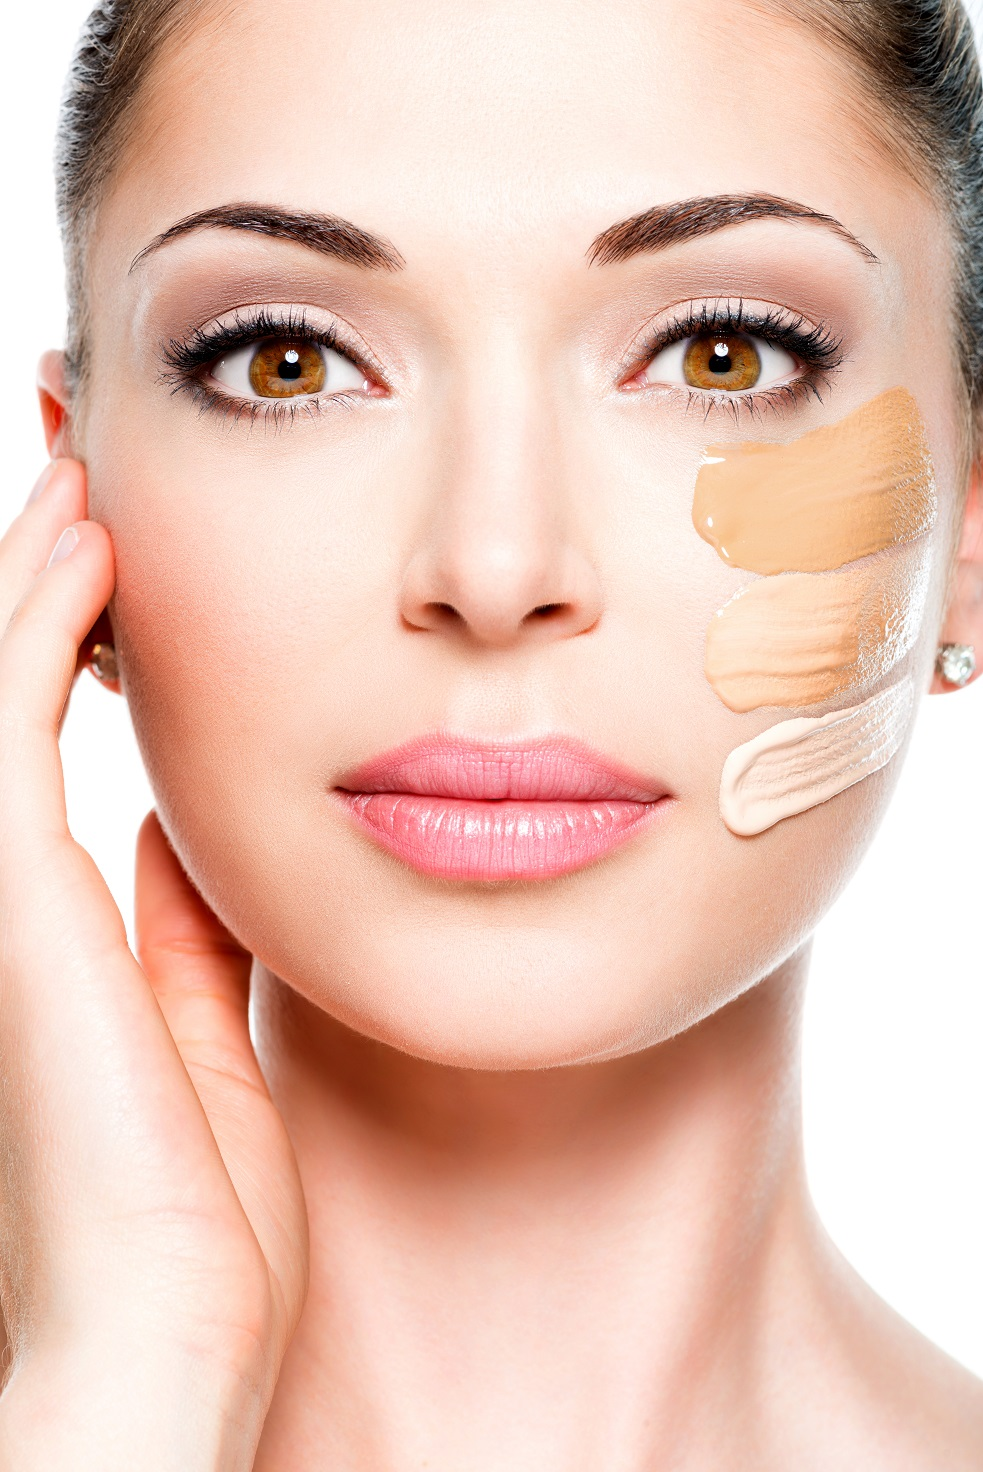 Perfect Makeup: Know Your Skin To Put On Perfect Makeup